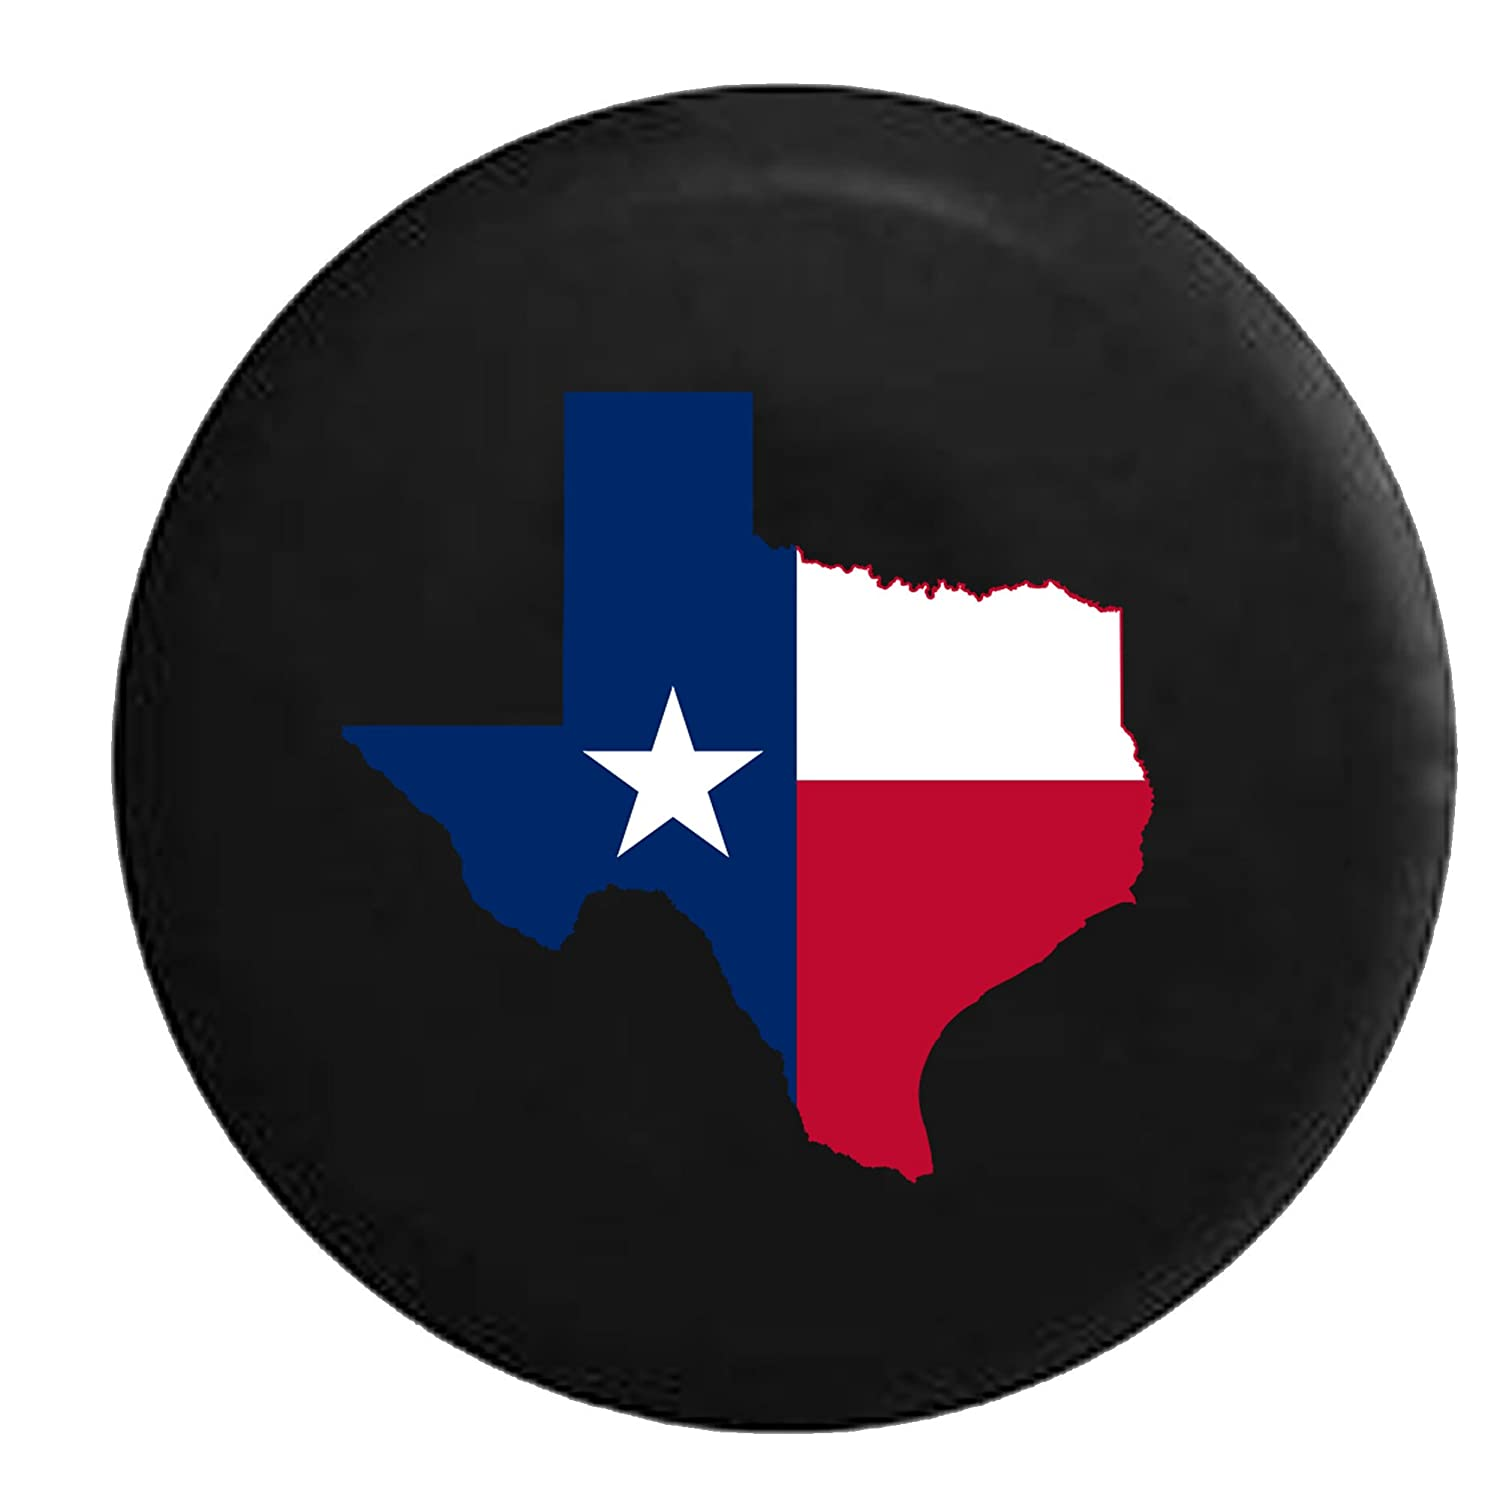 Country Living Spare Jeep Wrangler Camper SUV Tire Cover 29 in Texas State Flag Red White /& Blue